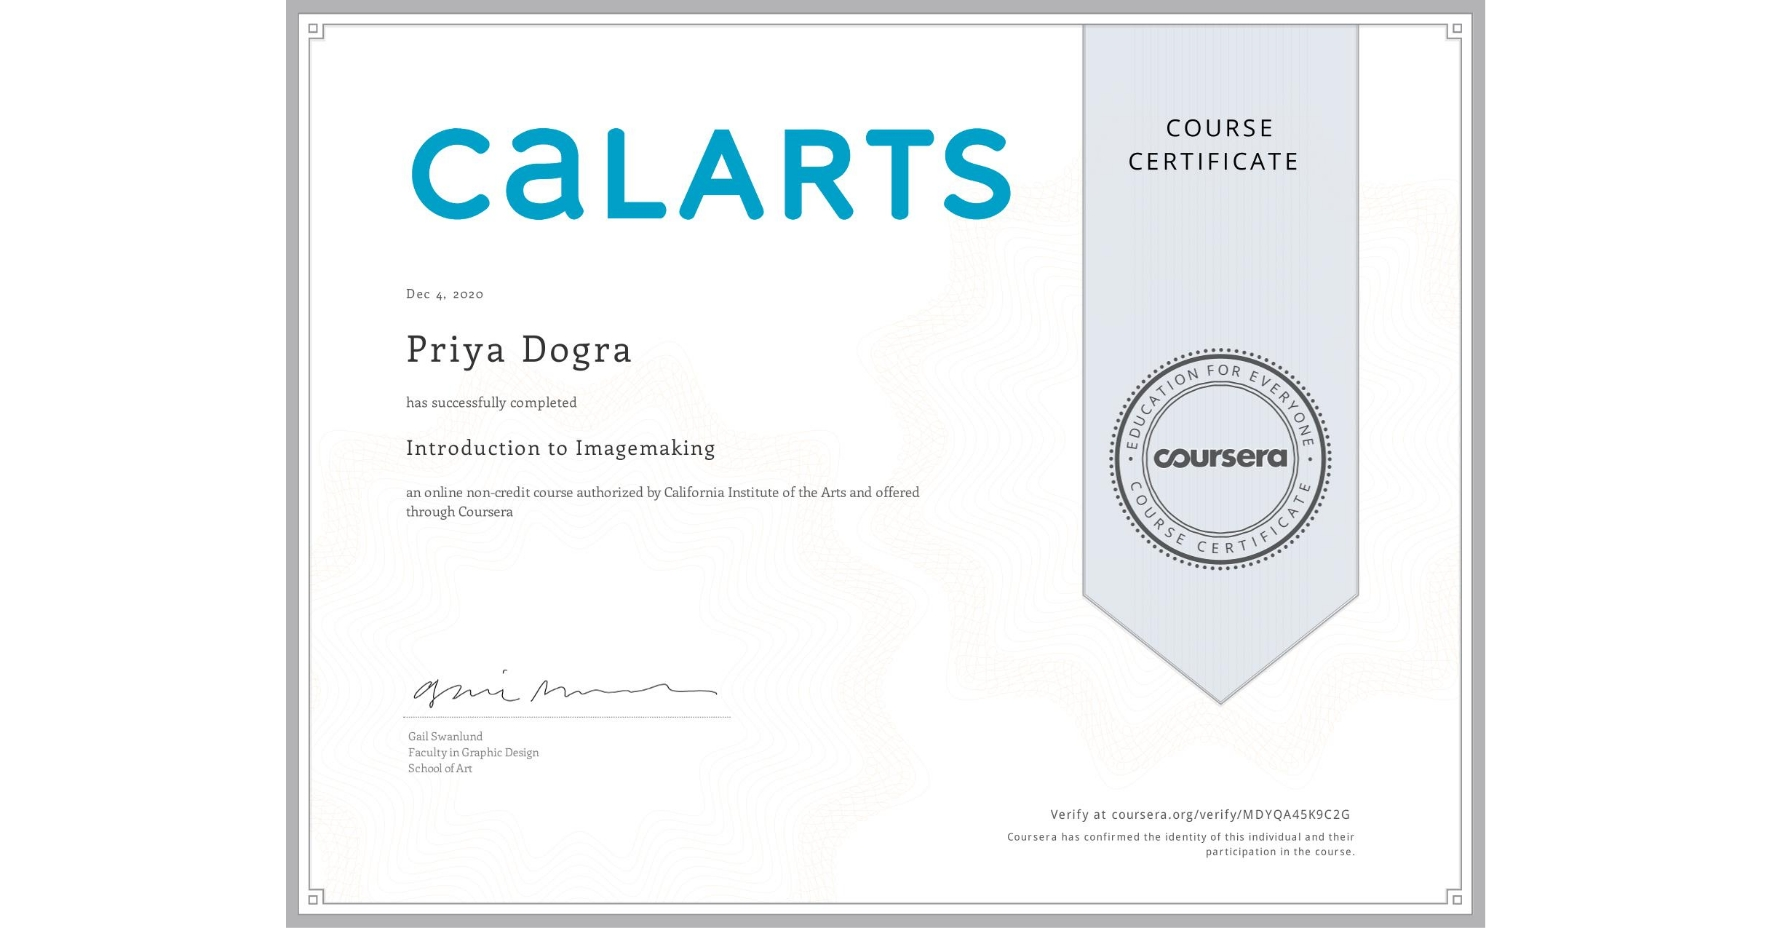 View certificate for Priya Dogra, Introduction to Imagemaking, an online non-credit course authorized by California Institute of the Arts and offered through Coursera